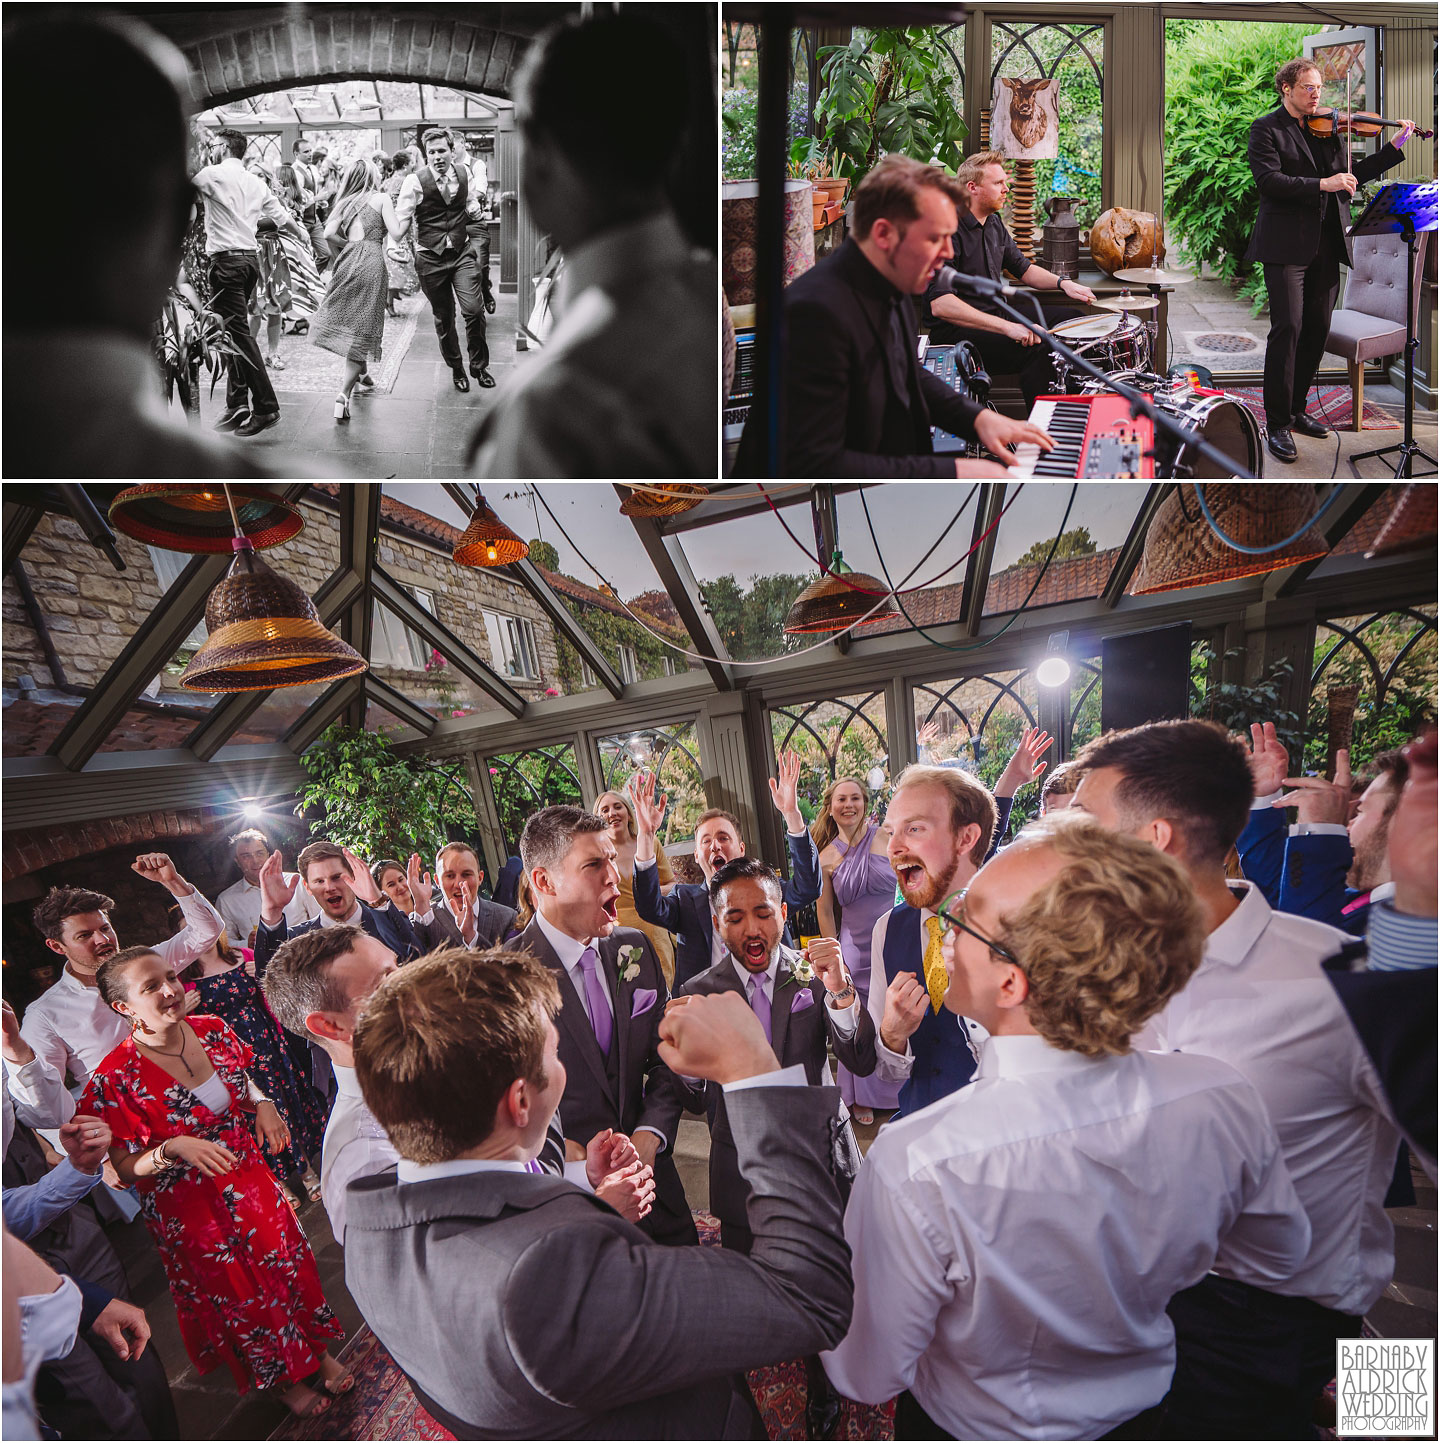 Triple Scotch wedding ceilidh band at The Pheasant Hotel Harome, The Pheasant Hotel Wedding Helmsley, Wedding Photography at The Pheasant Hotel North Yorkshire, North Yorkshire Wedding Photographer